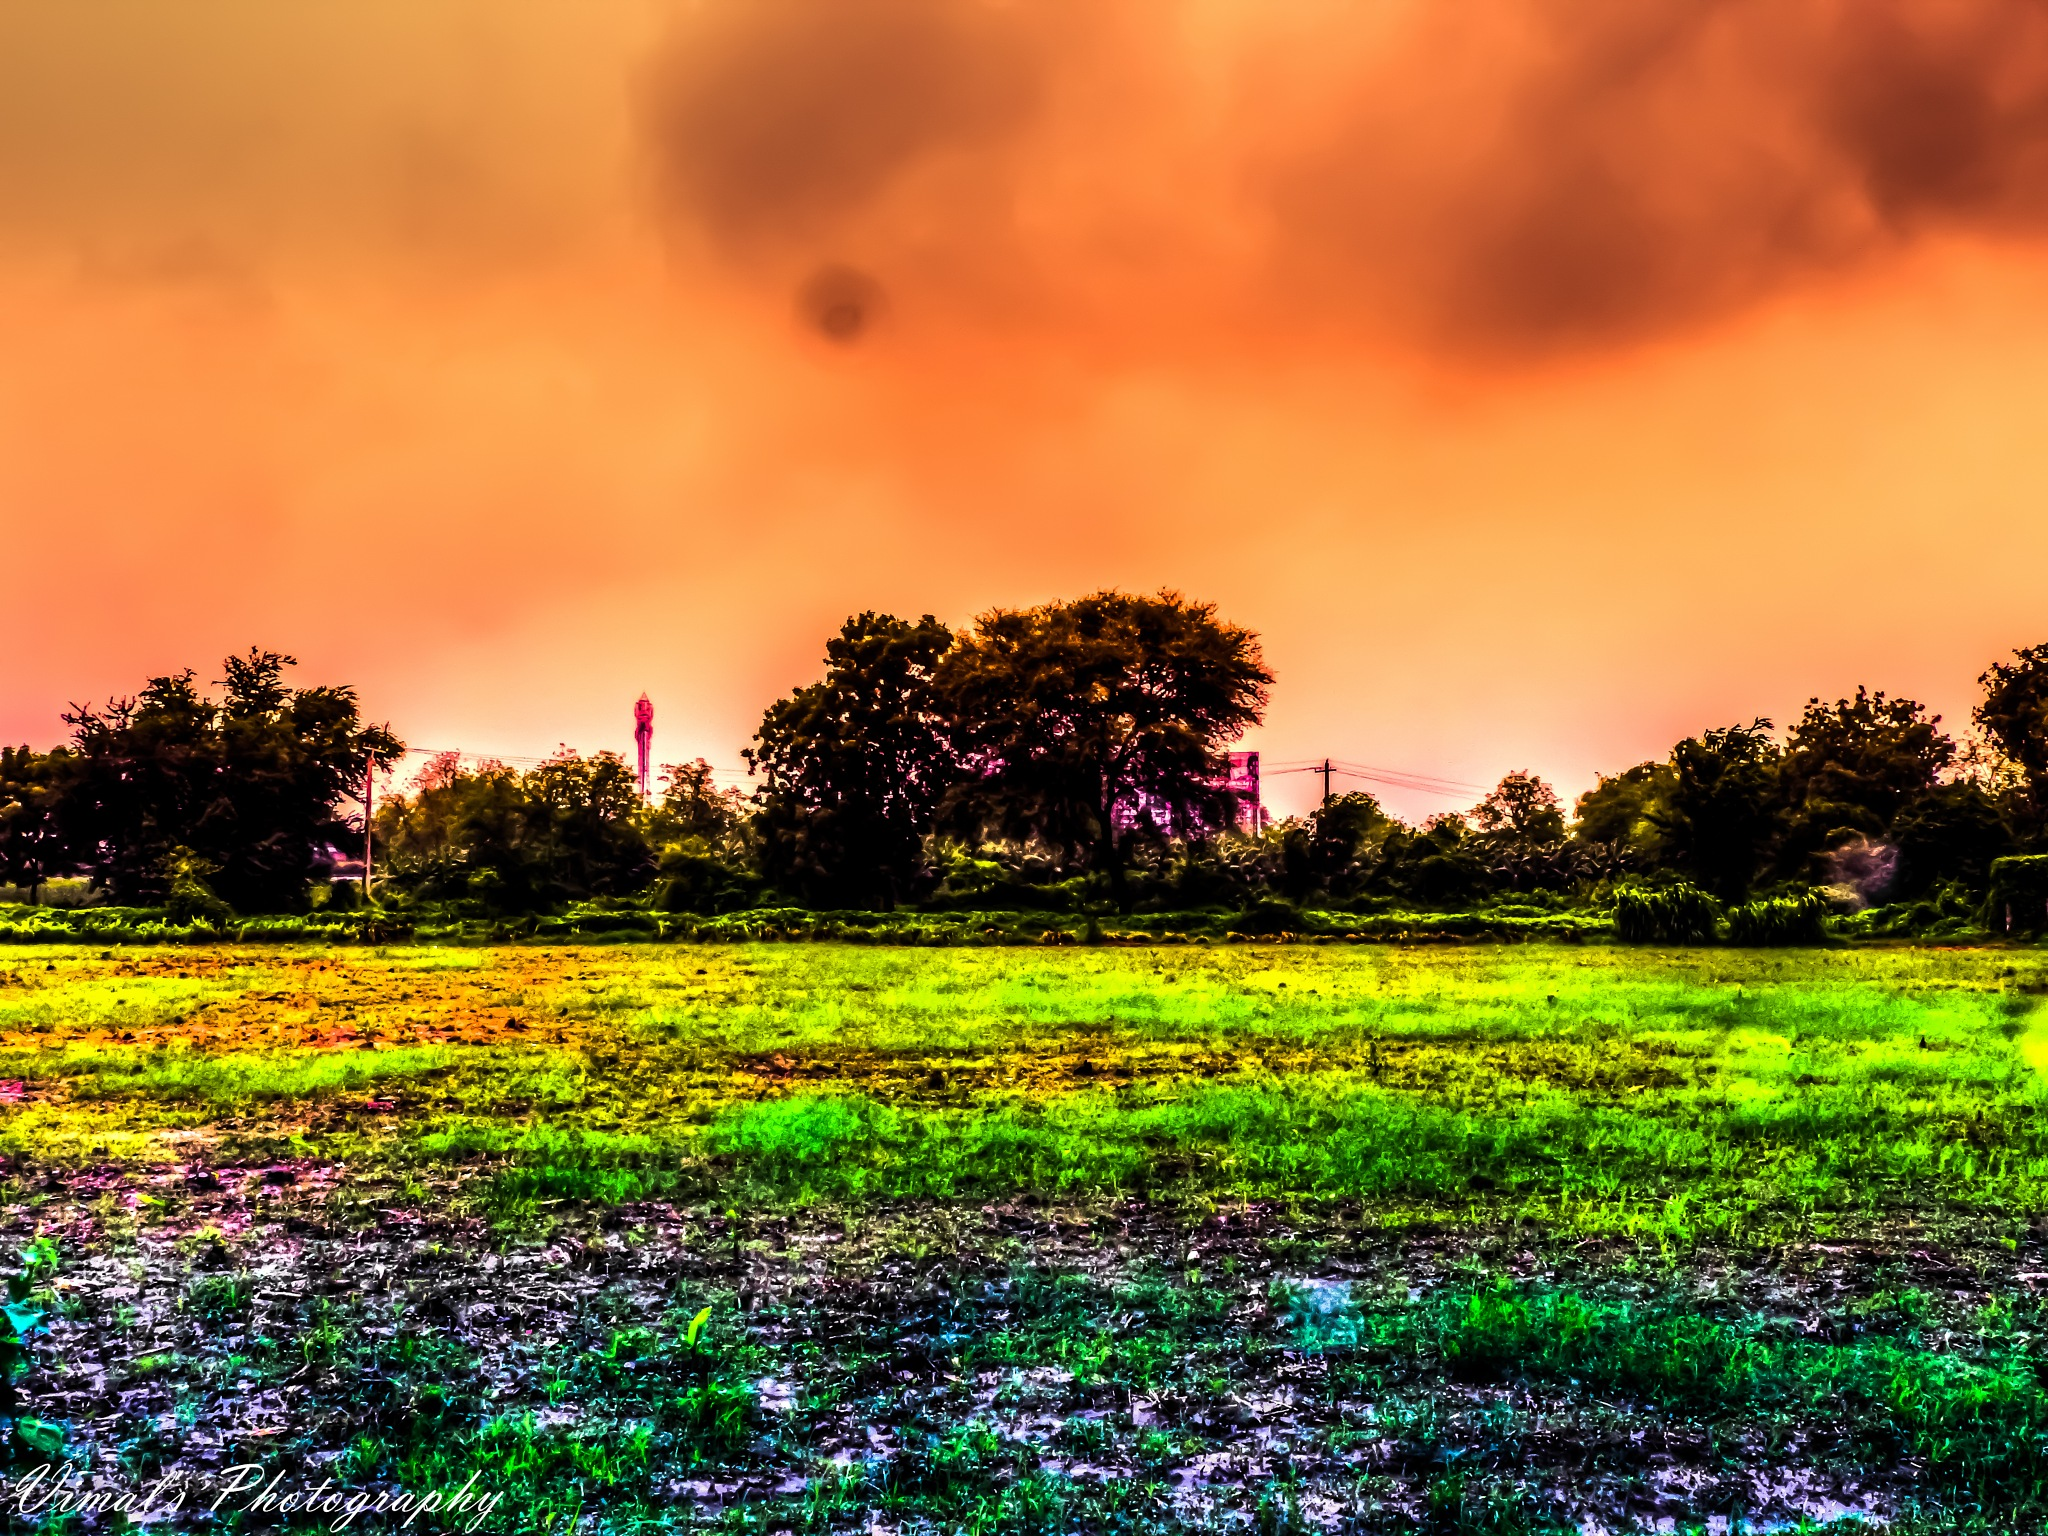 #Abstract #Village #Farm by JAY